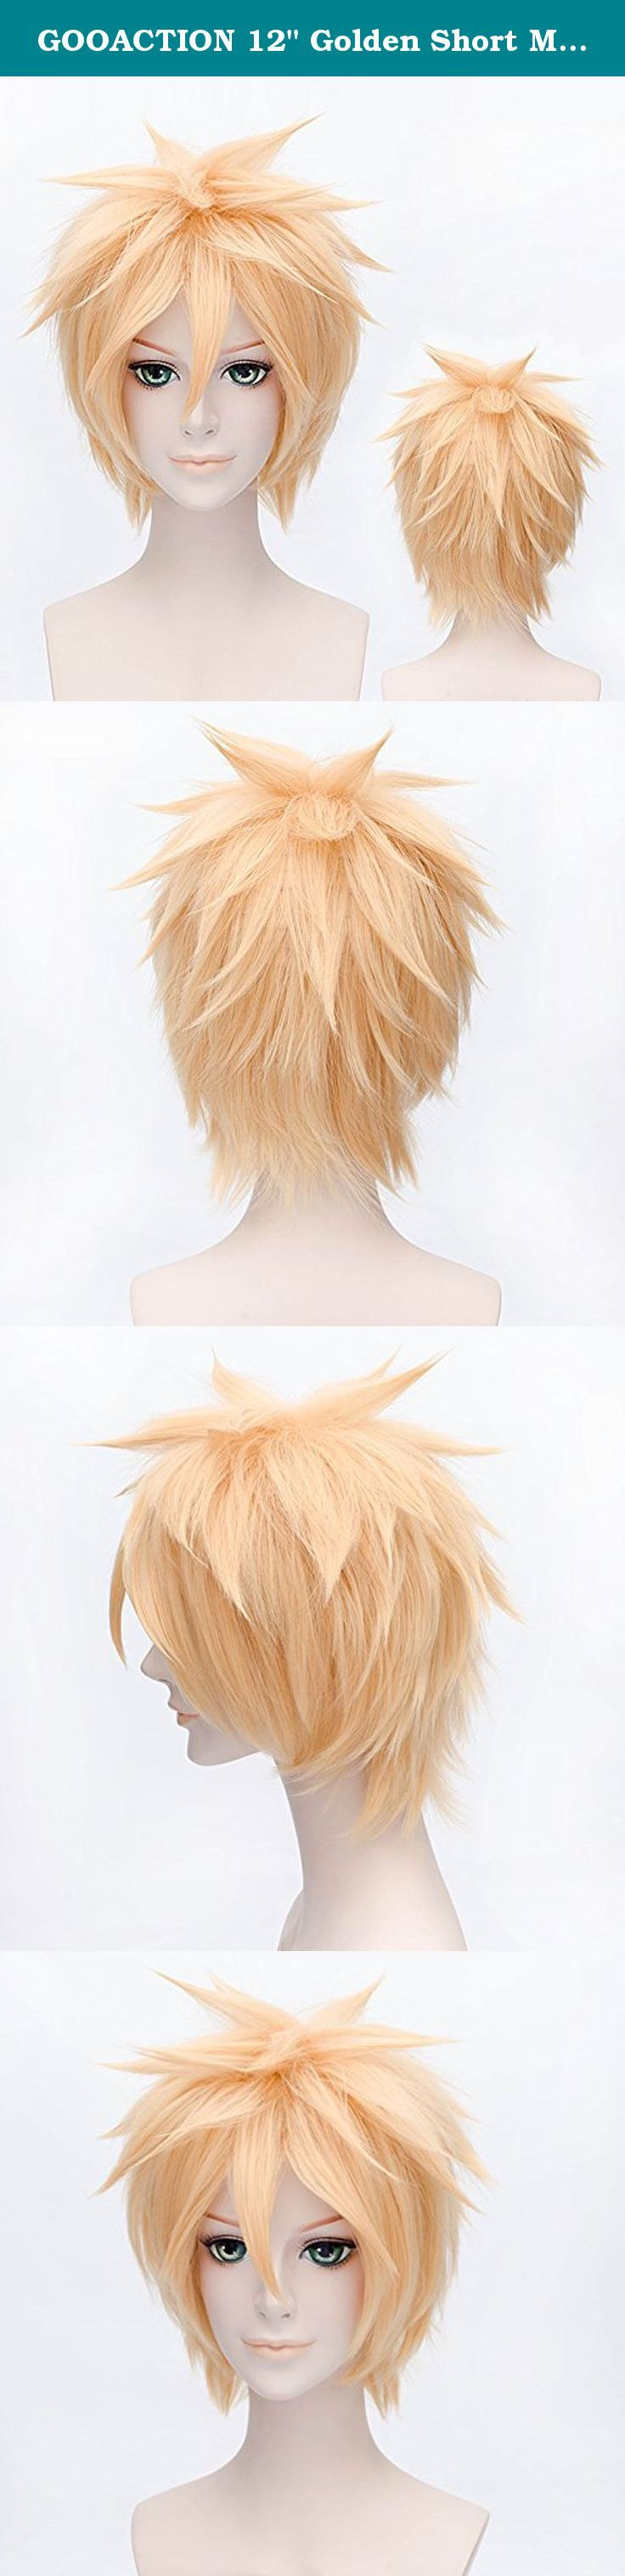 """GOOACTION 12"""" Golden Short Msn Synthetic Hair Wigs Vocaloid Anime Kagamine Len Cosplay Costume Party Wig. Feature: for Cosplay, Film, Theater, Party, Carneval, Halloween,Christmas,etc Very stylish design with natural looking and soft touch. You can wear it to parties as well as for daily use. The item is Easy to wash and care just using a little mild shampoo in cold water. Package: 1 x wig."""